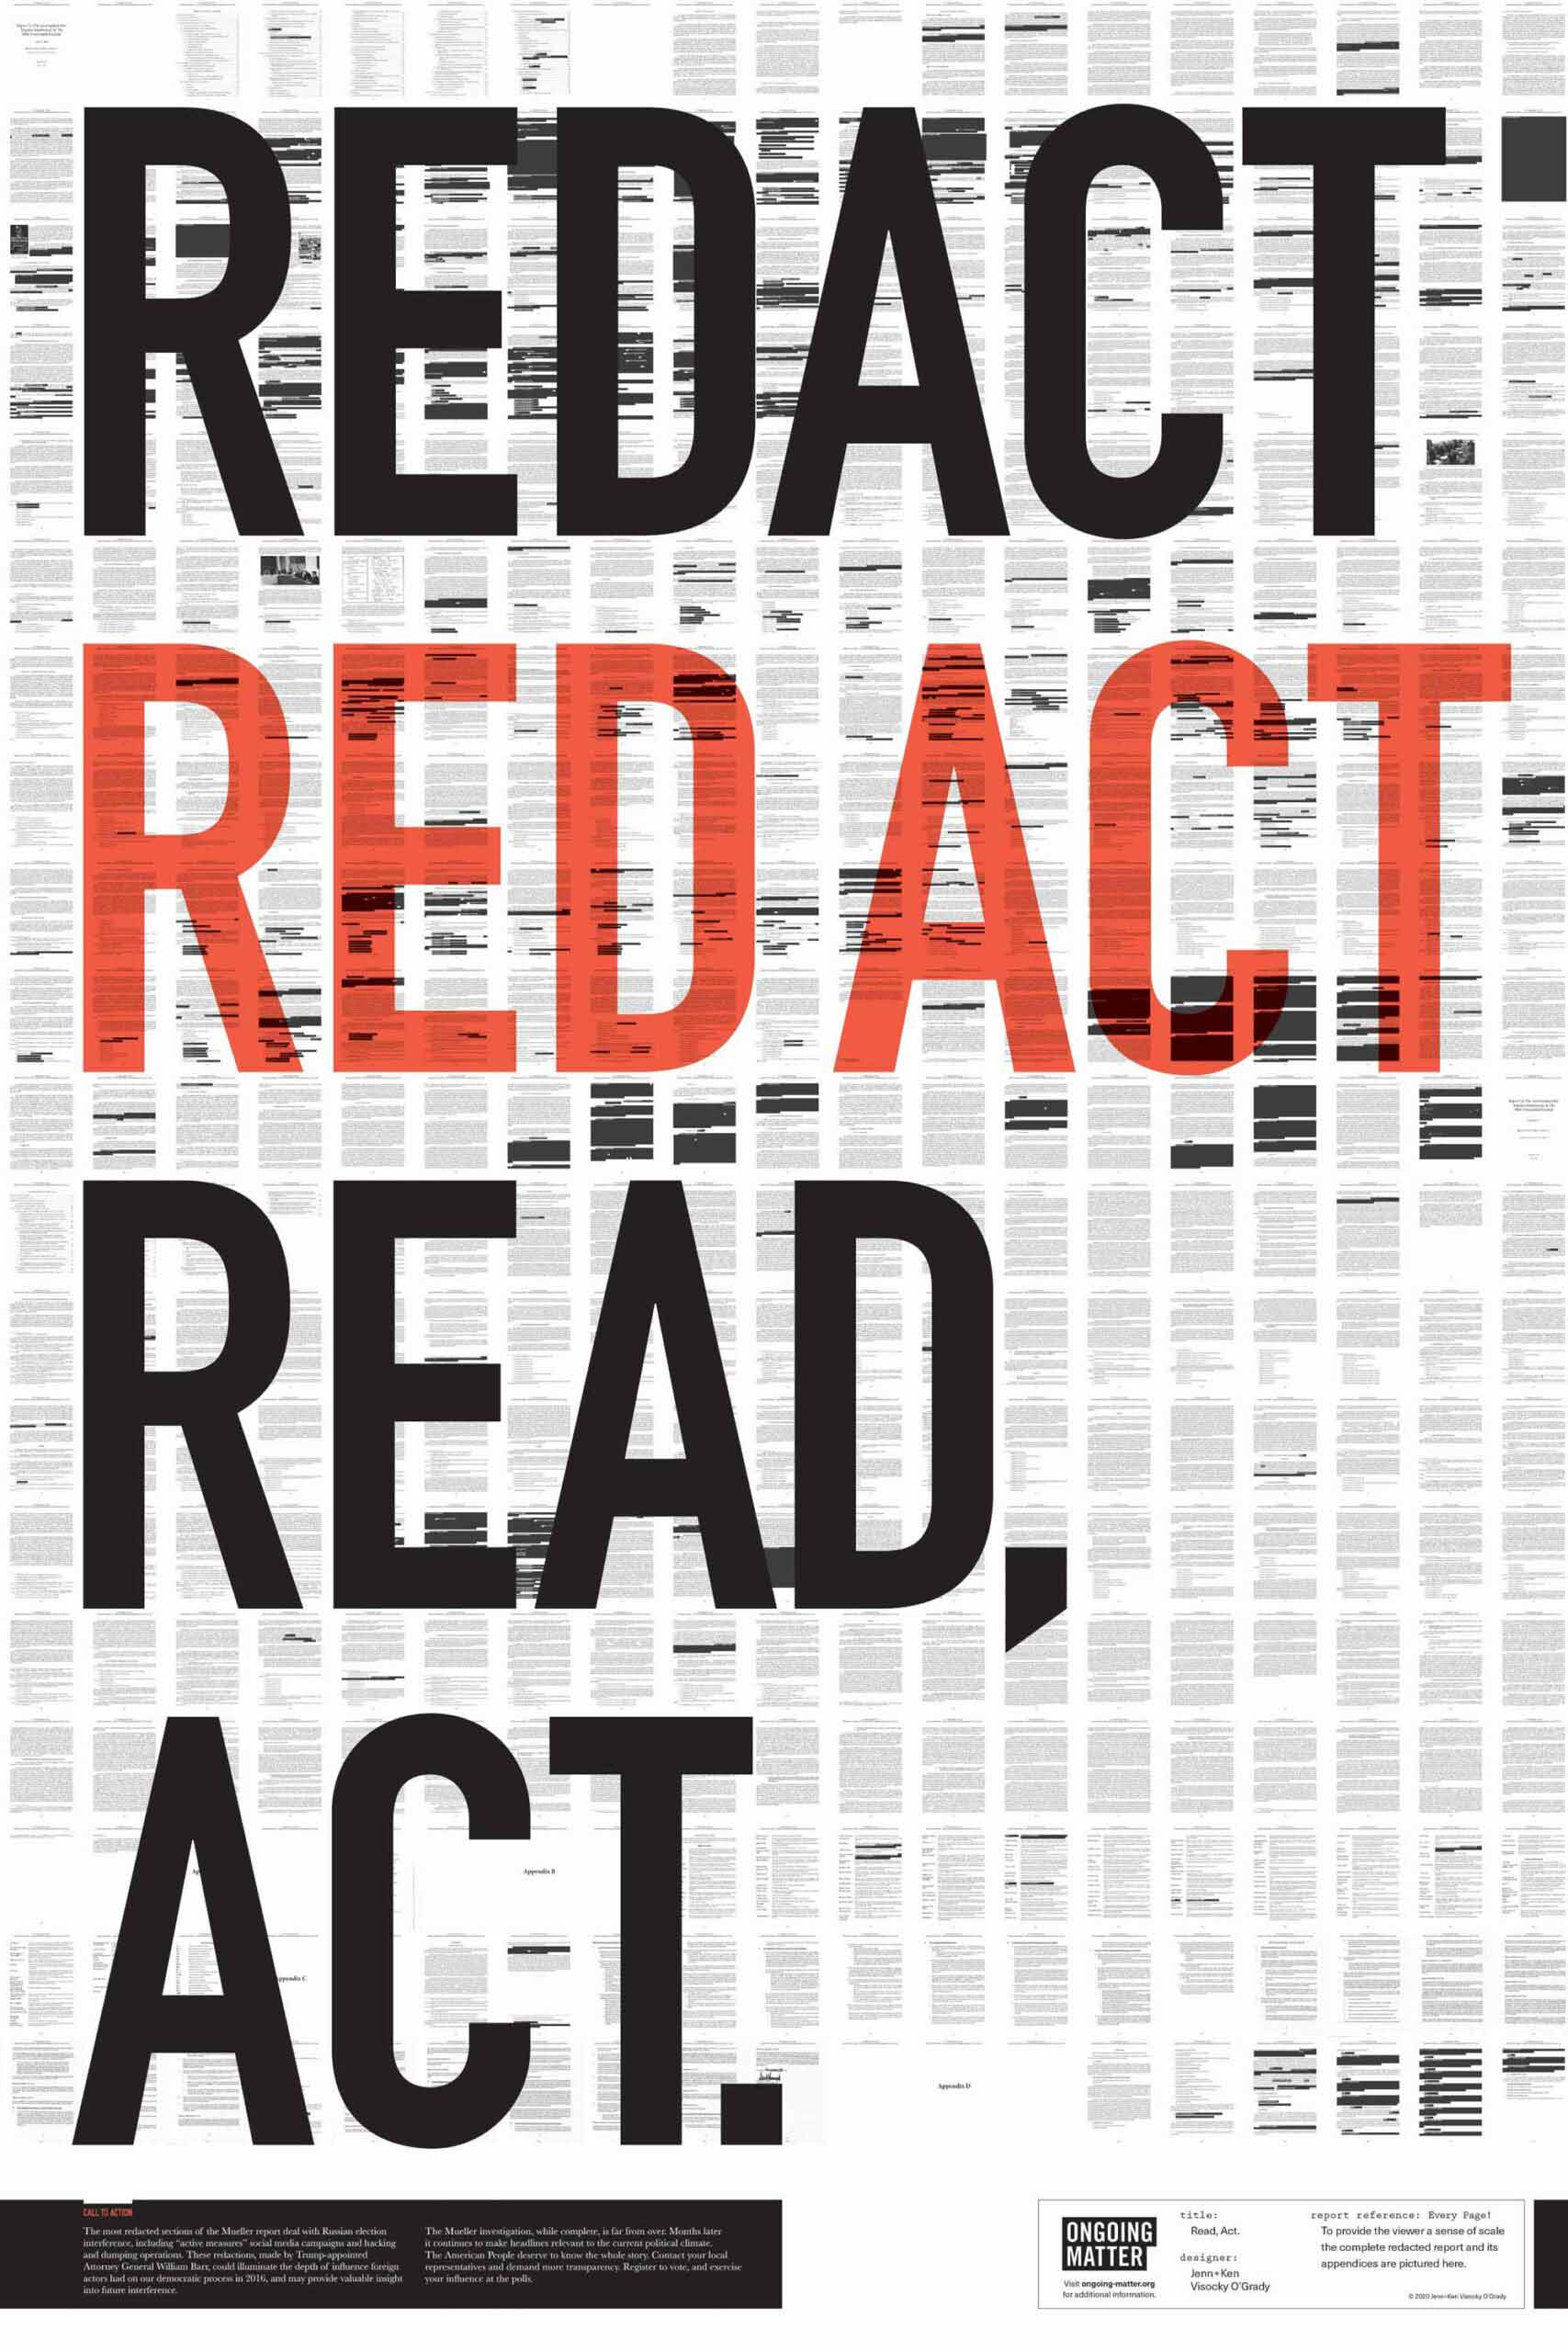 Read, Act.